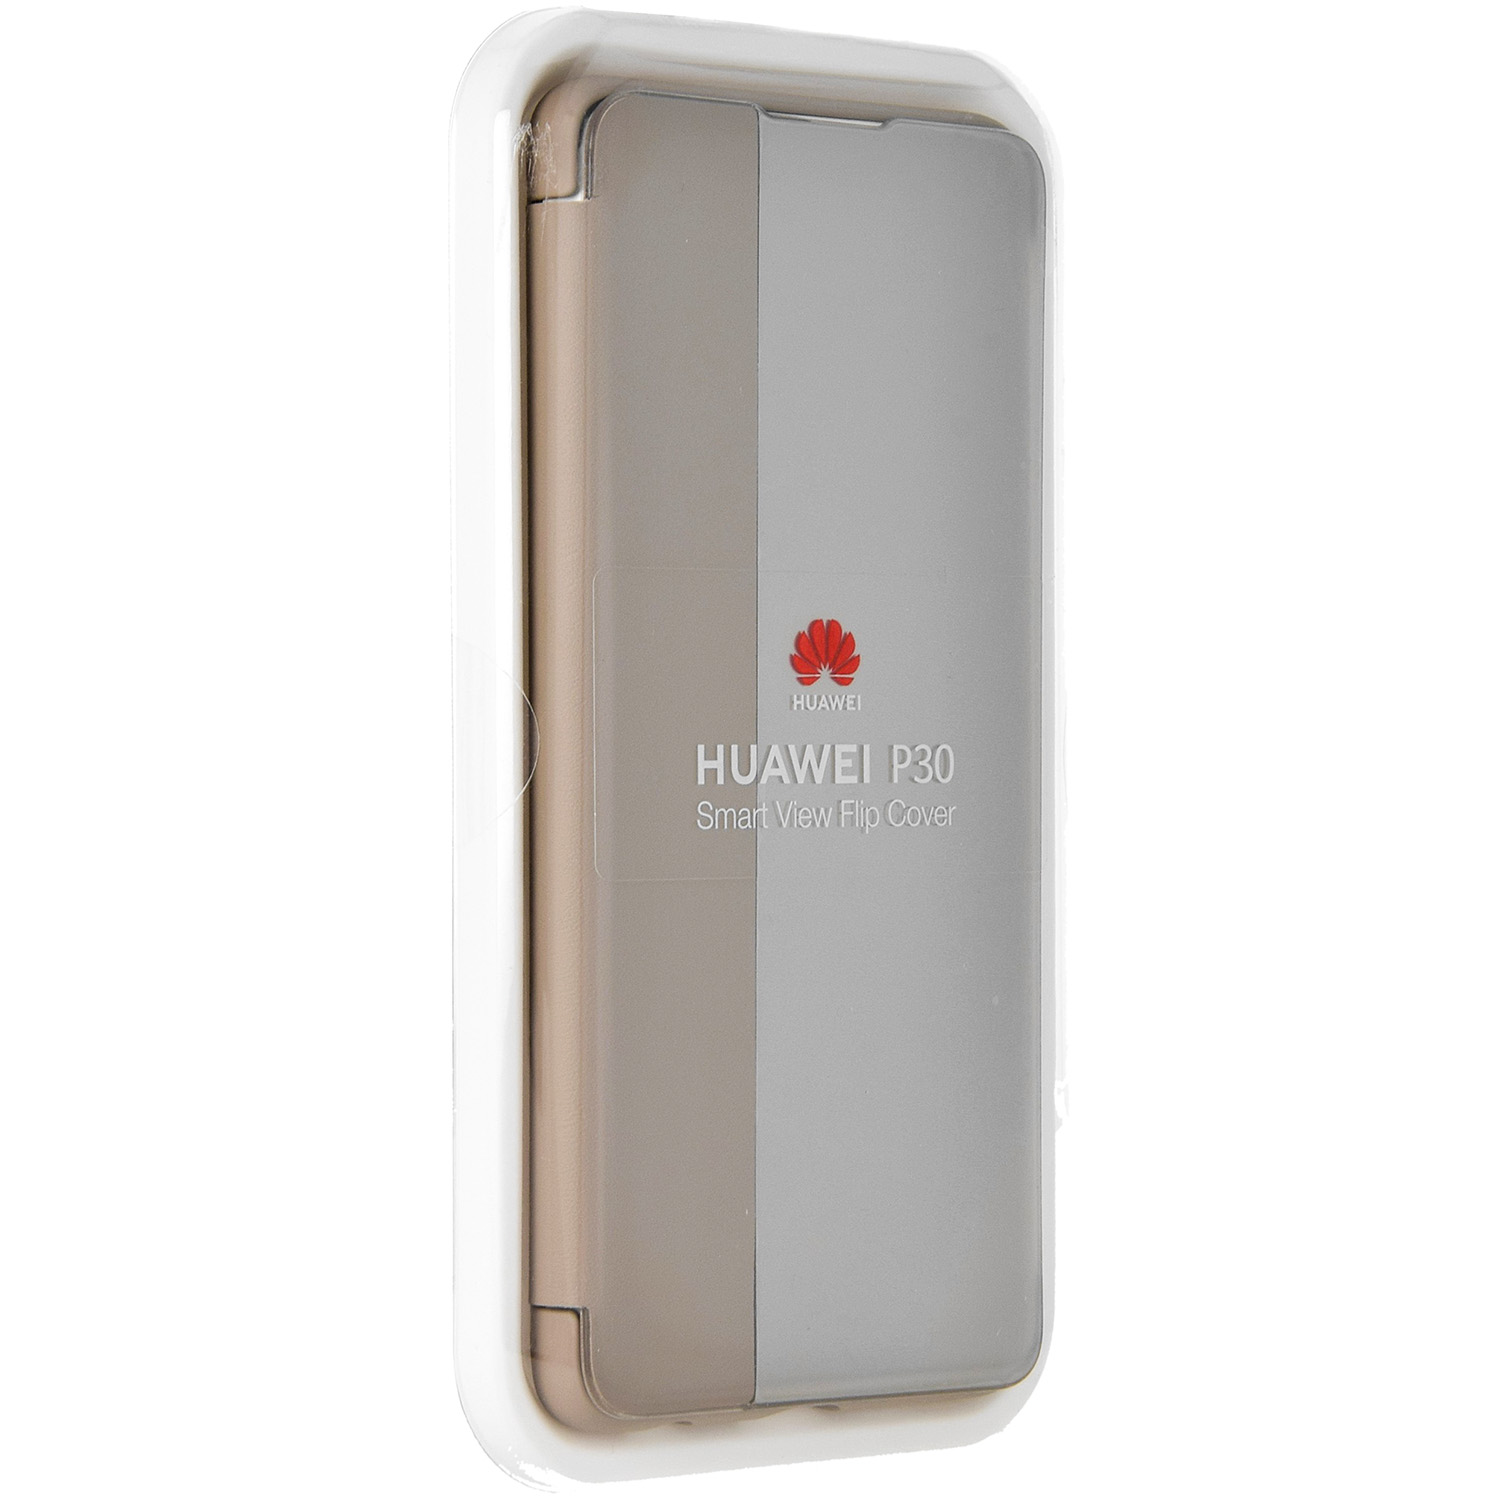 Etui Smart View Flip Cover do Huawei P30.